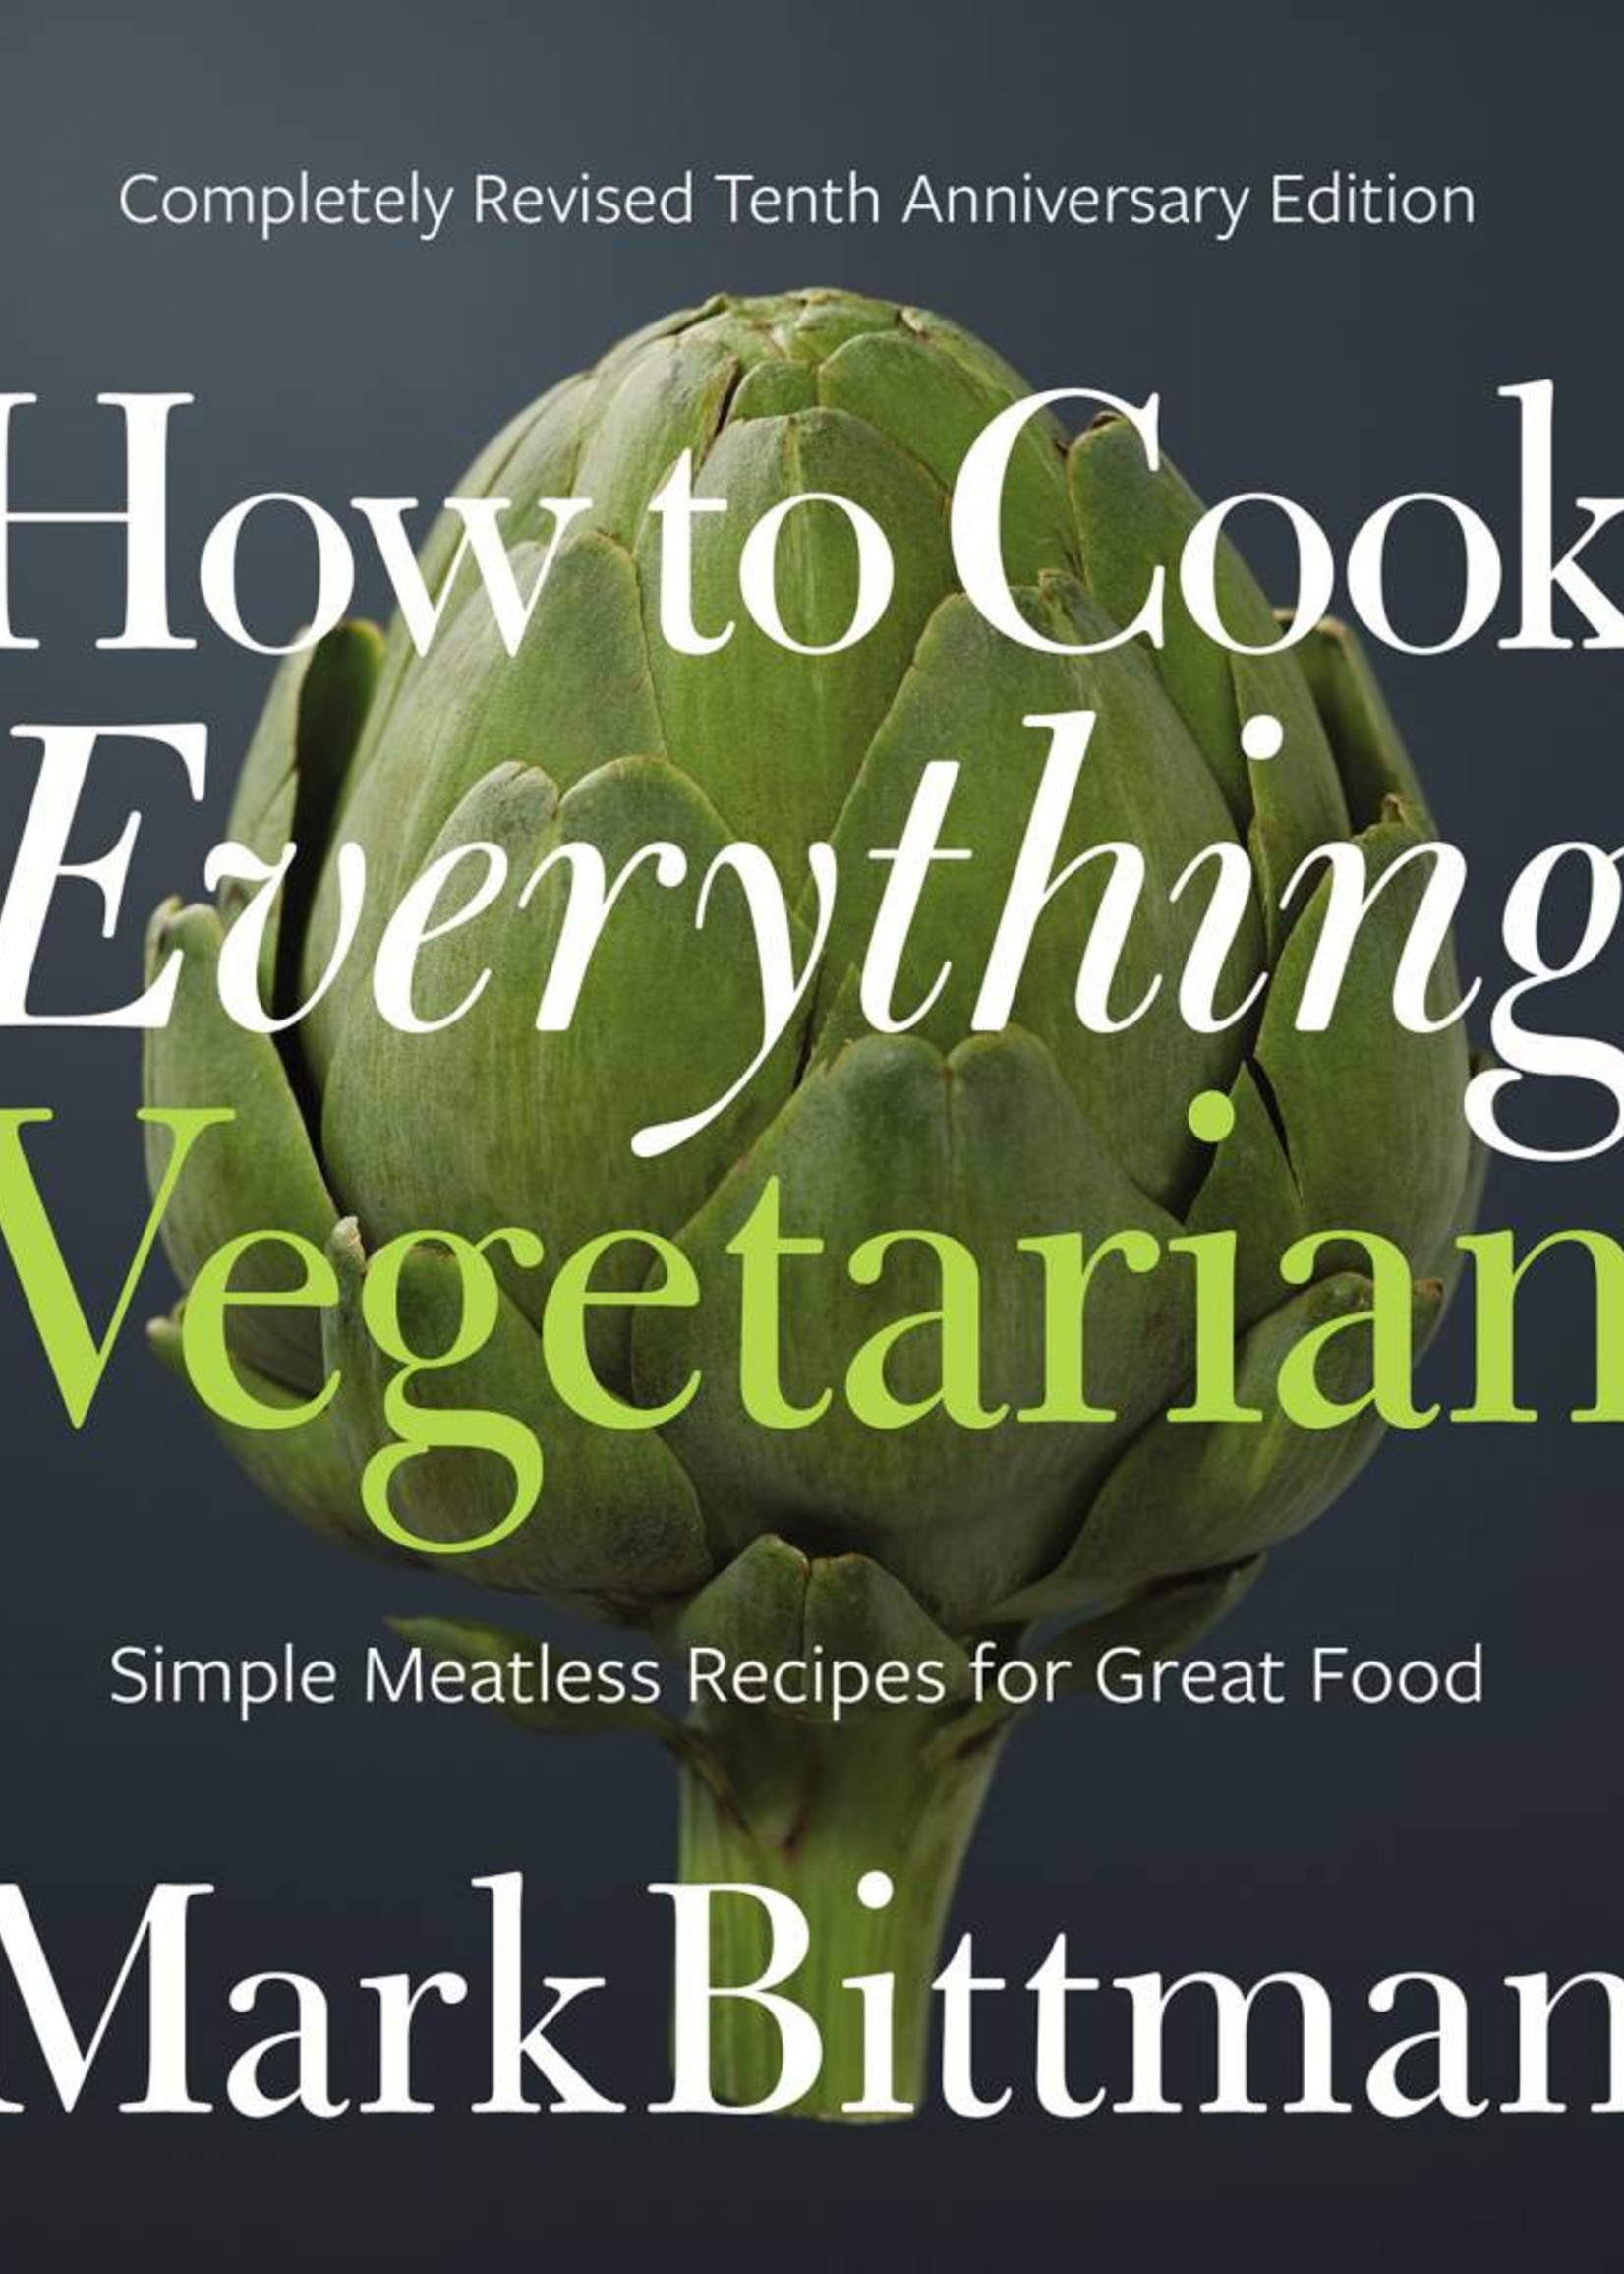 How to Cook Everything Vegetarian   Simple Meatless Recipes for Great Food 10th Anniversary Edition